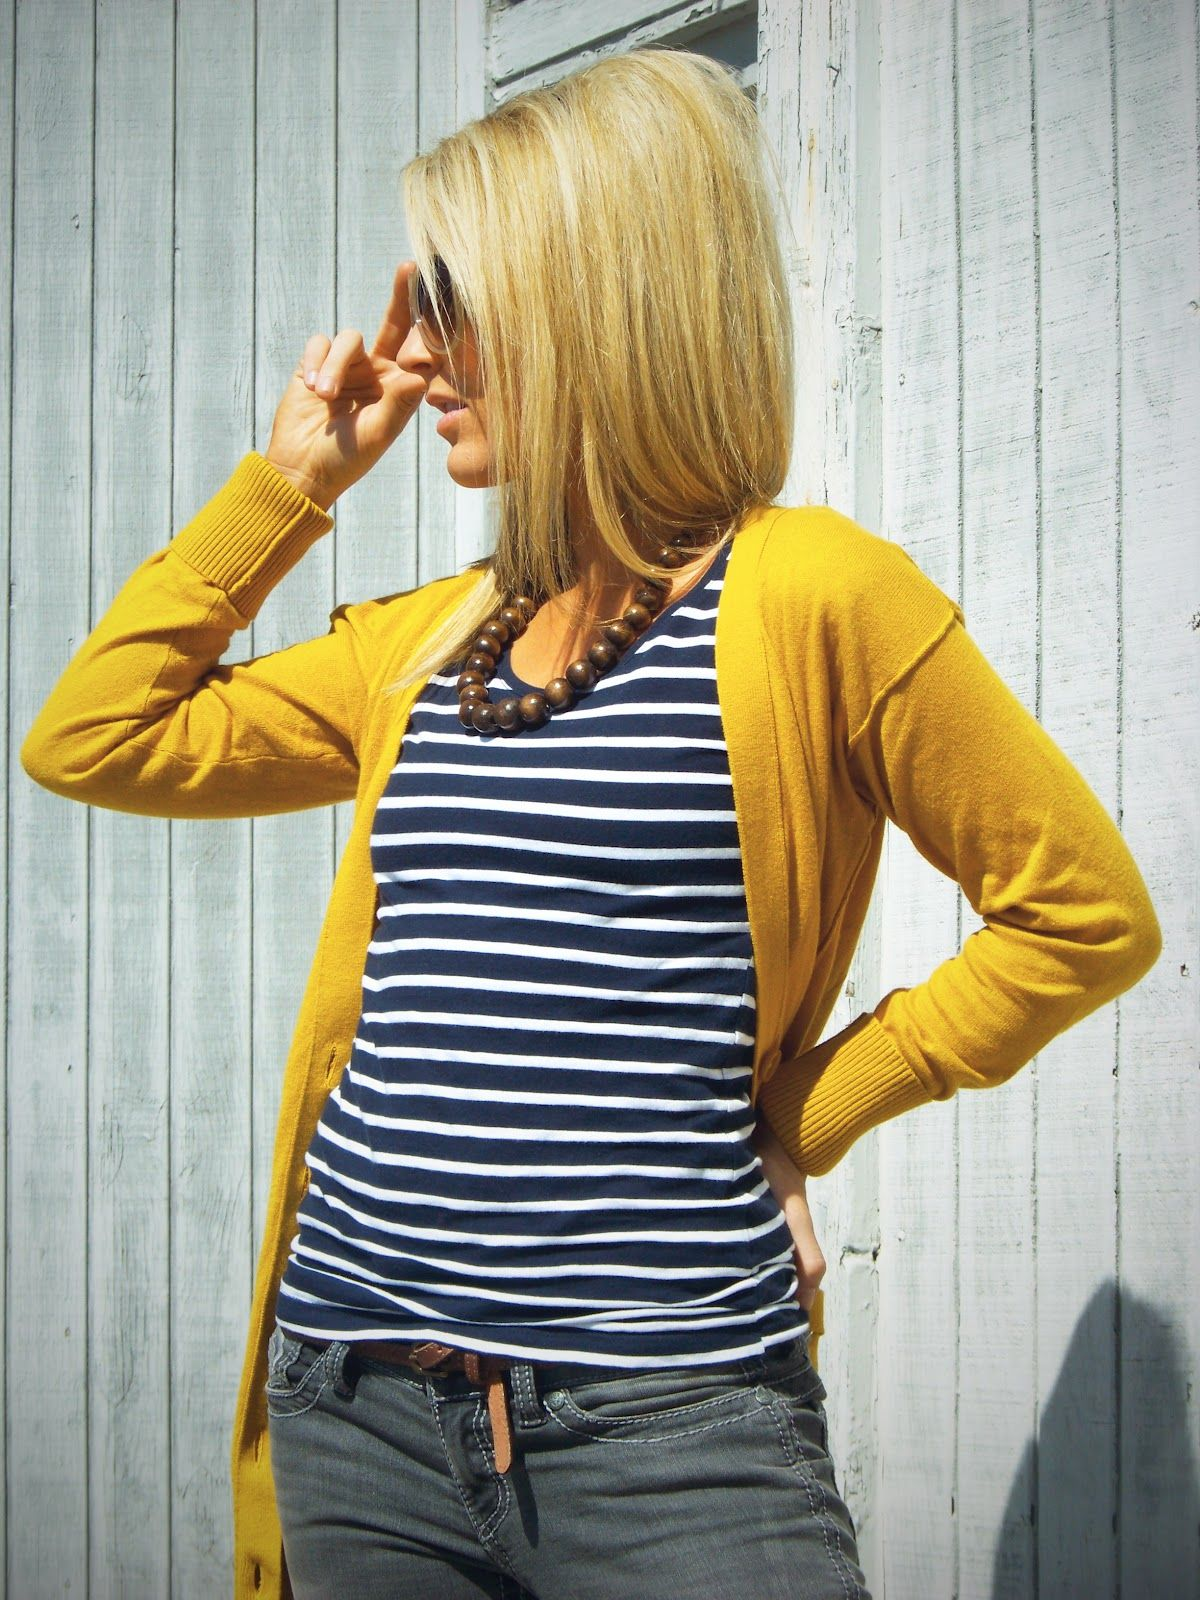 fall outfit | My Style | Pinterest | Mustard cardigan, Navy ...